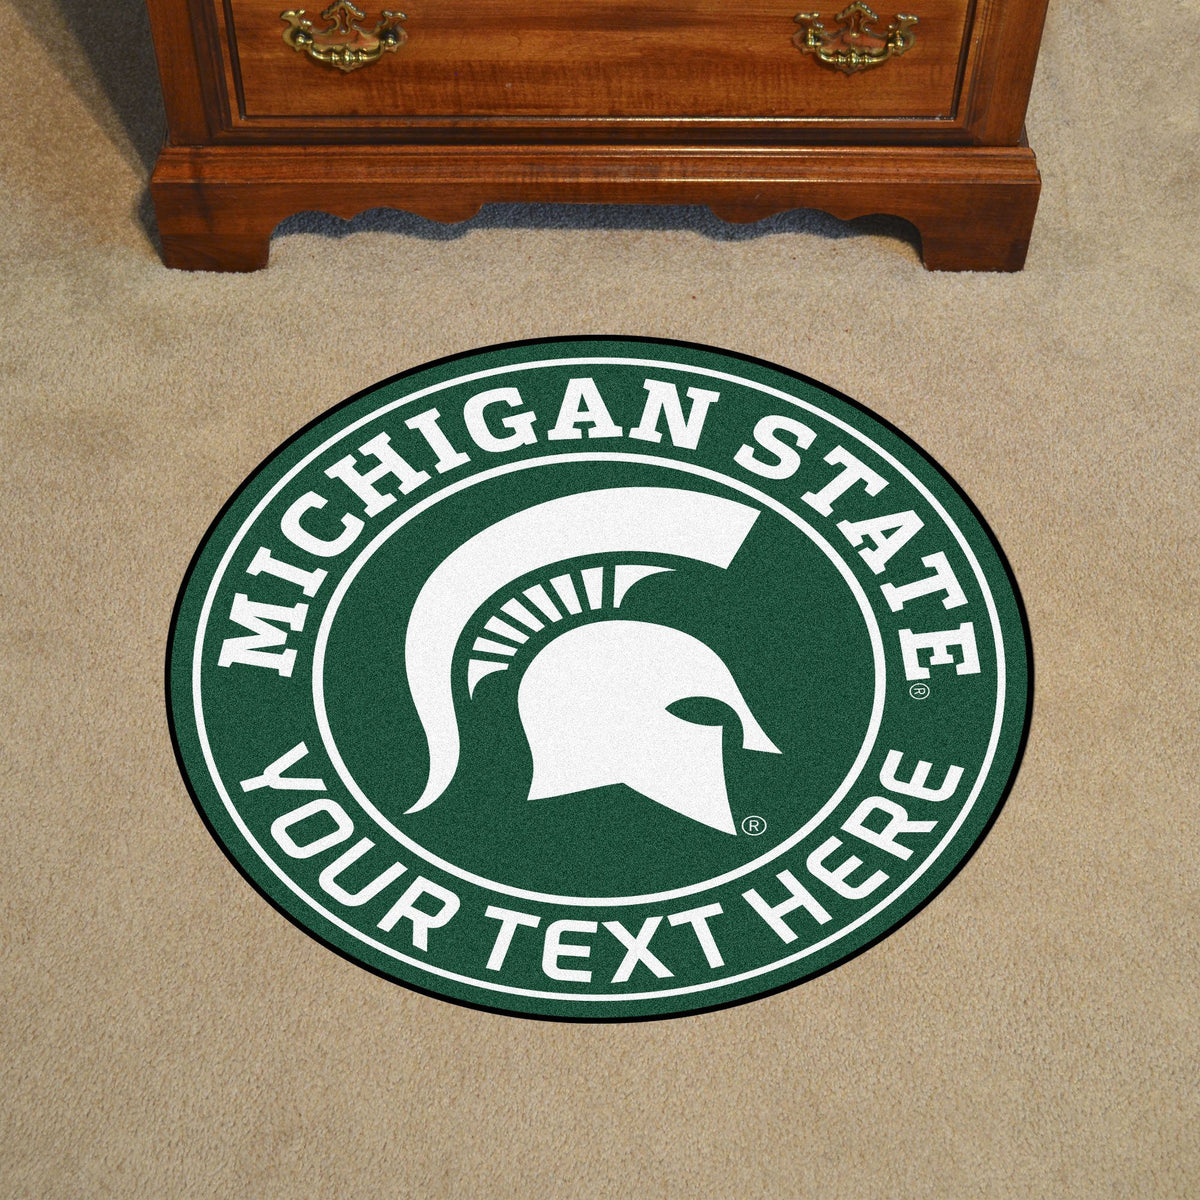 Collegiate Personalized Roundel Mat Personalized Roundel Mat Fan Mats Michigan State University